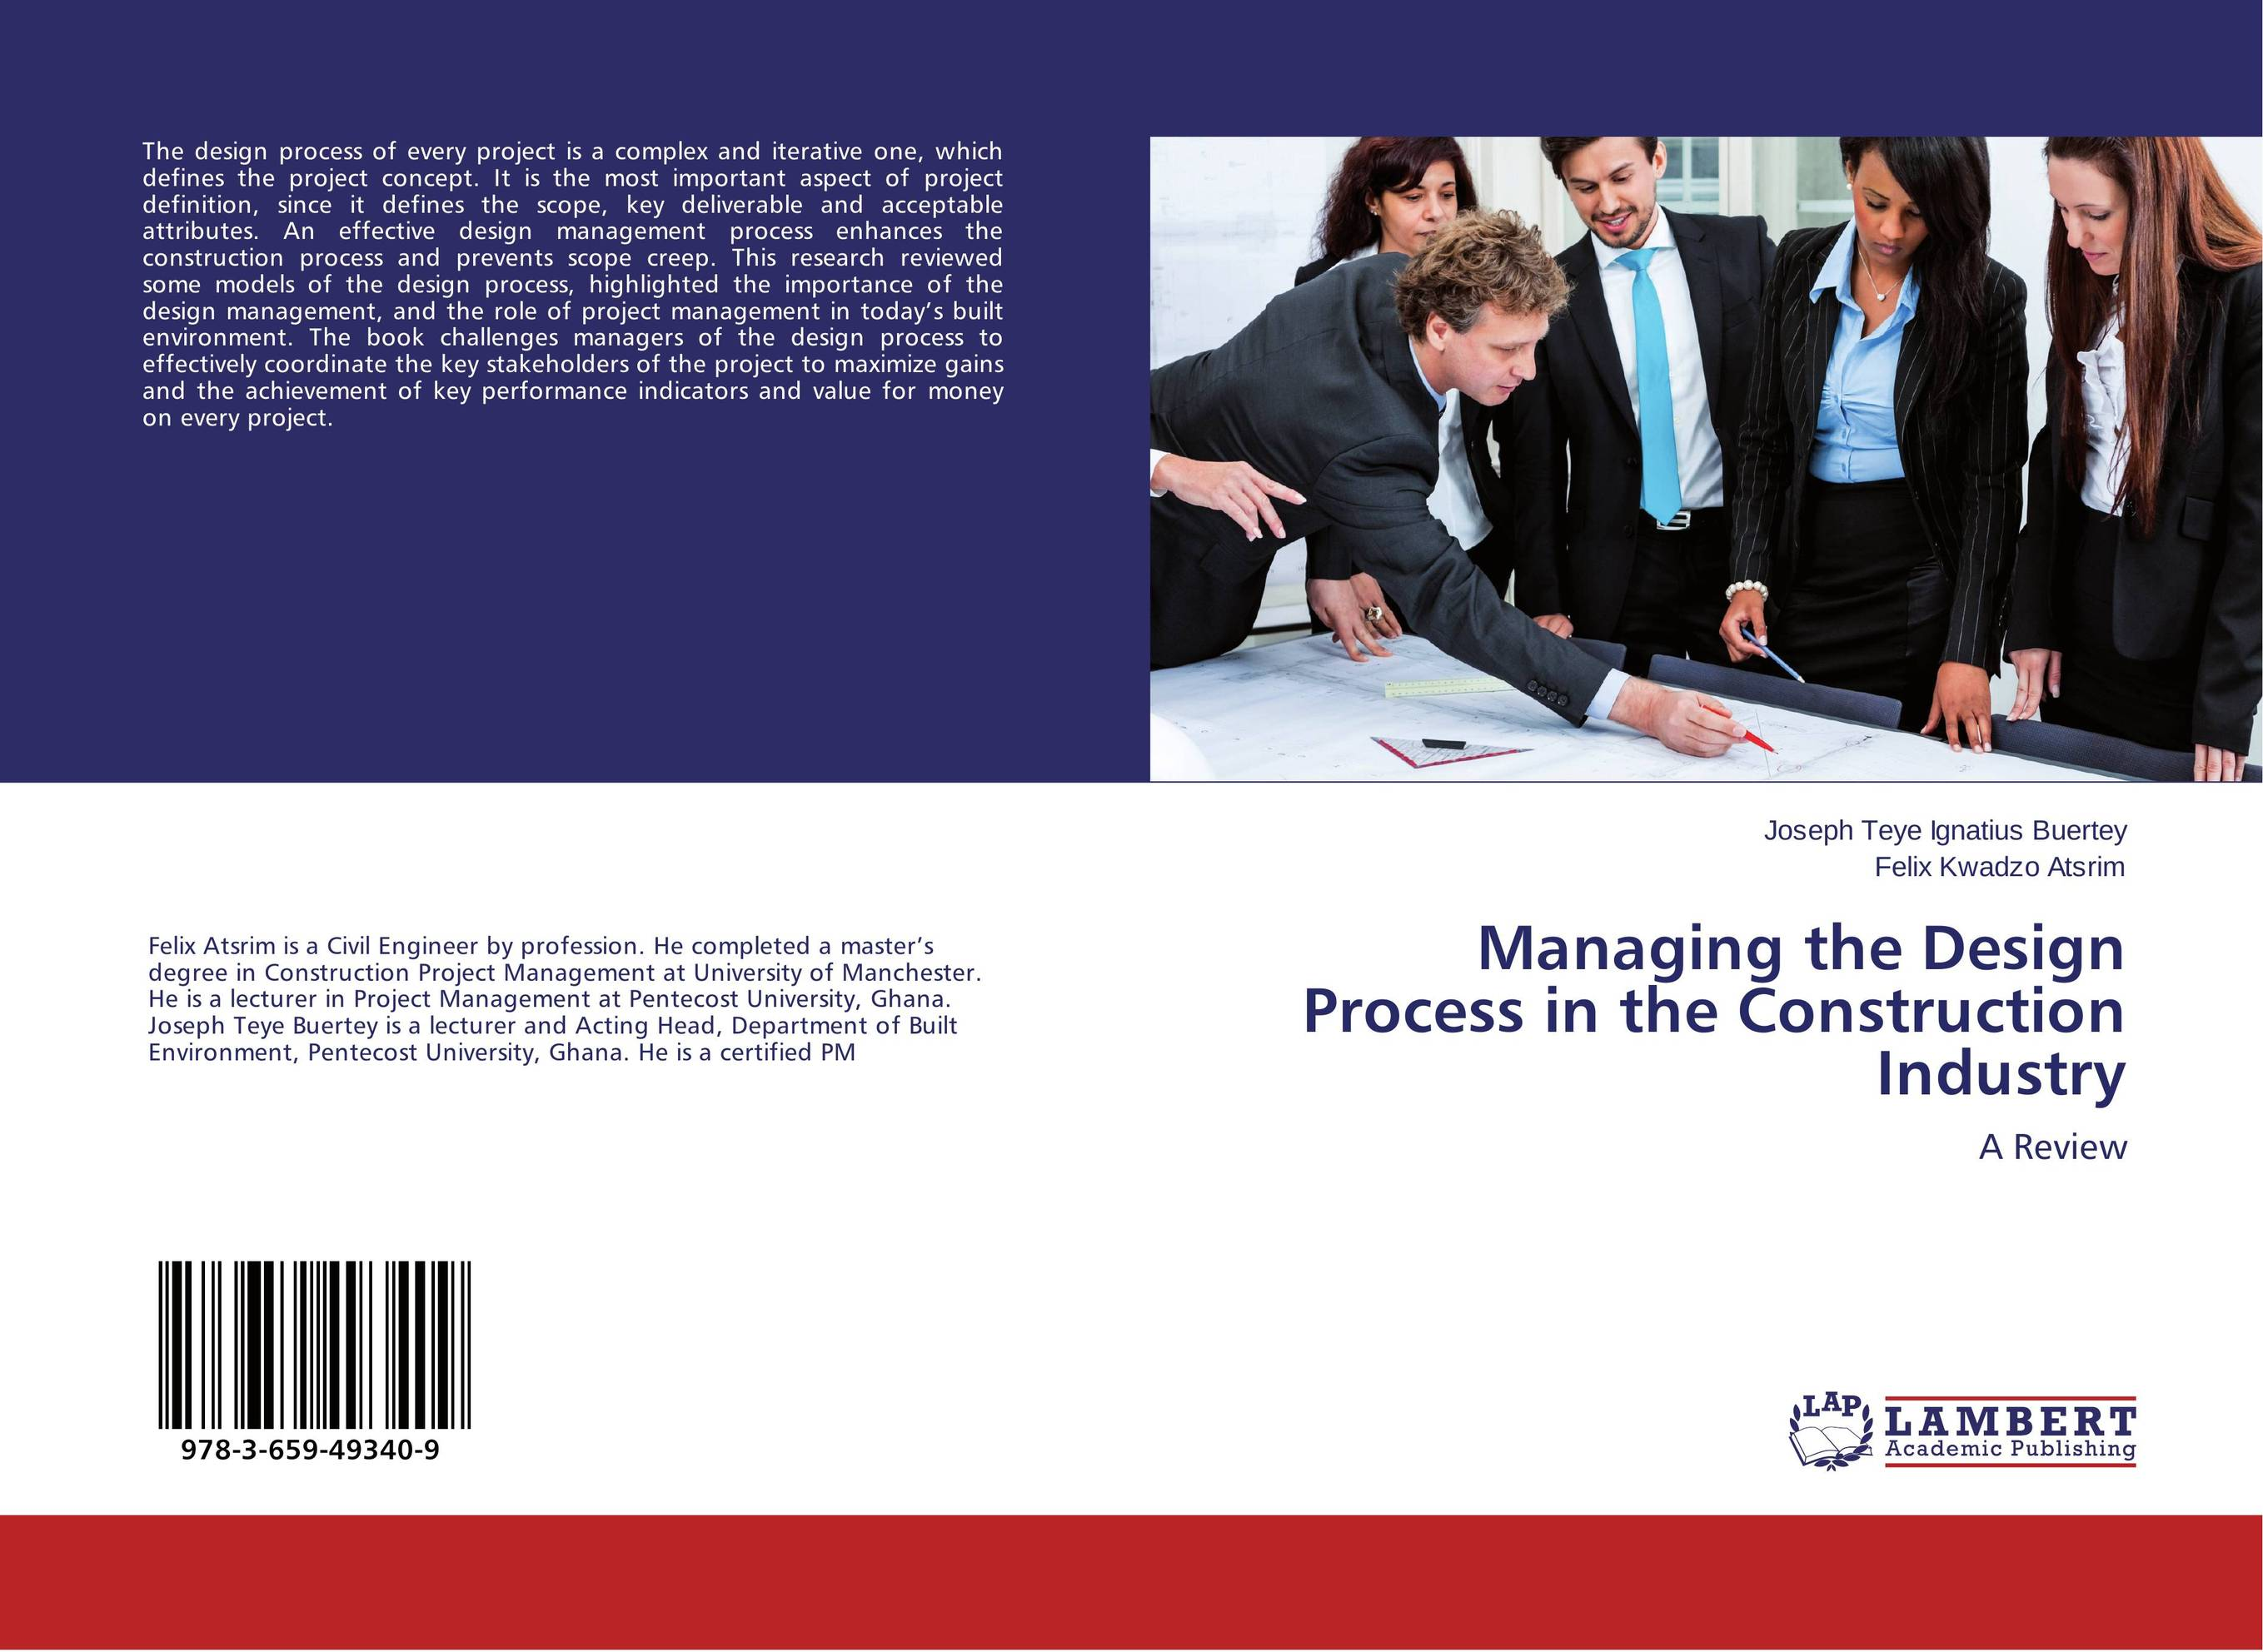 Managing the Design Process in the Construction Industry